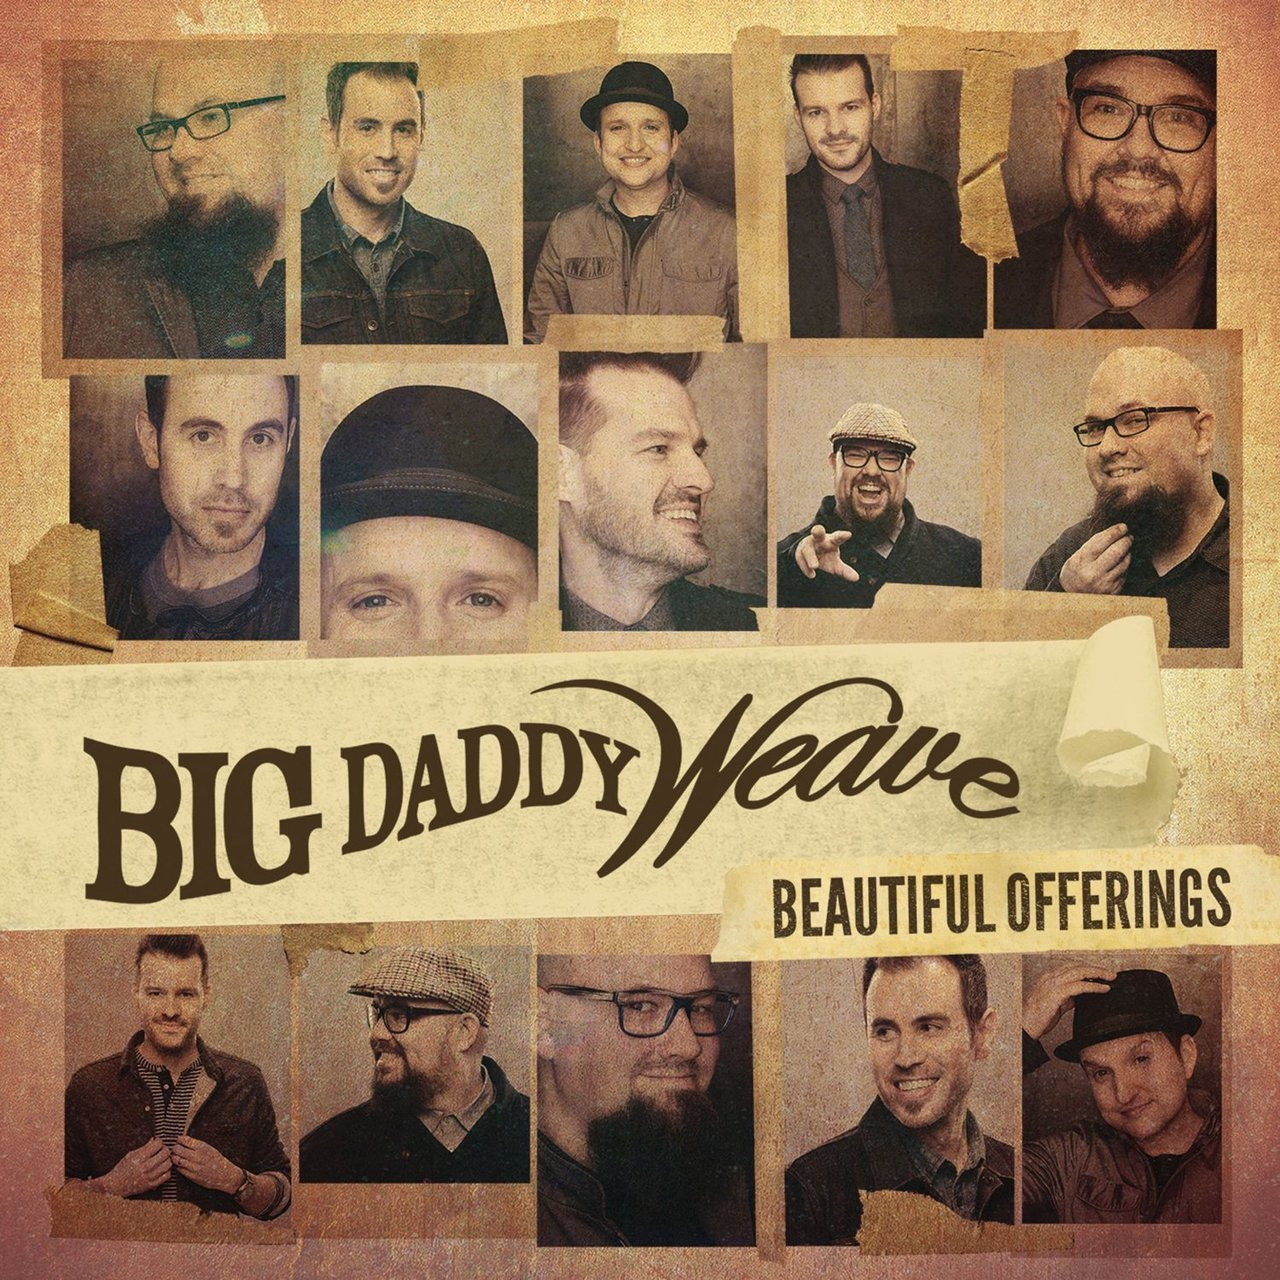 Beautiful offerings   deluxe edition by big daddy weave